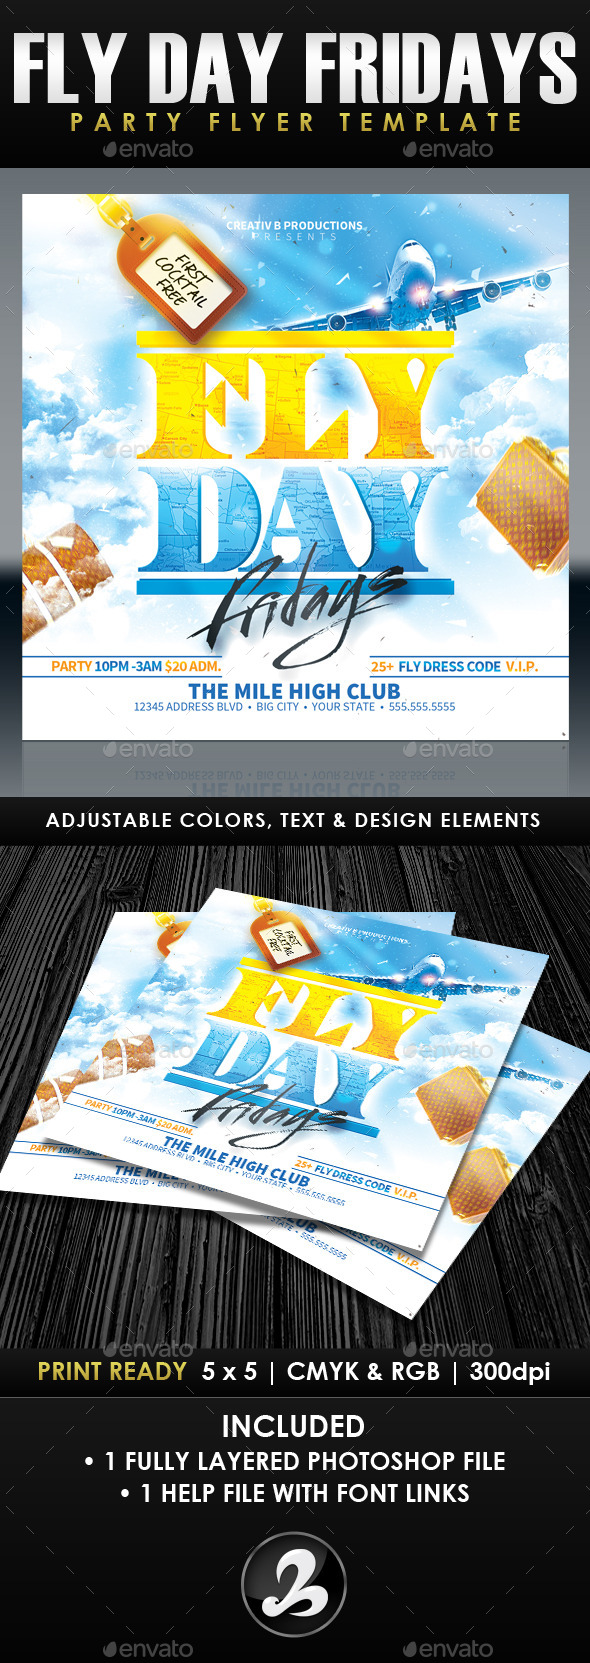 GraphicRiver Fly Day Fridays Party Flyer Template 11041215